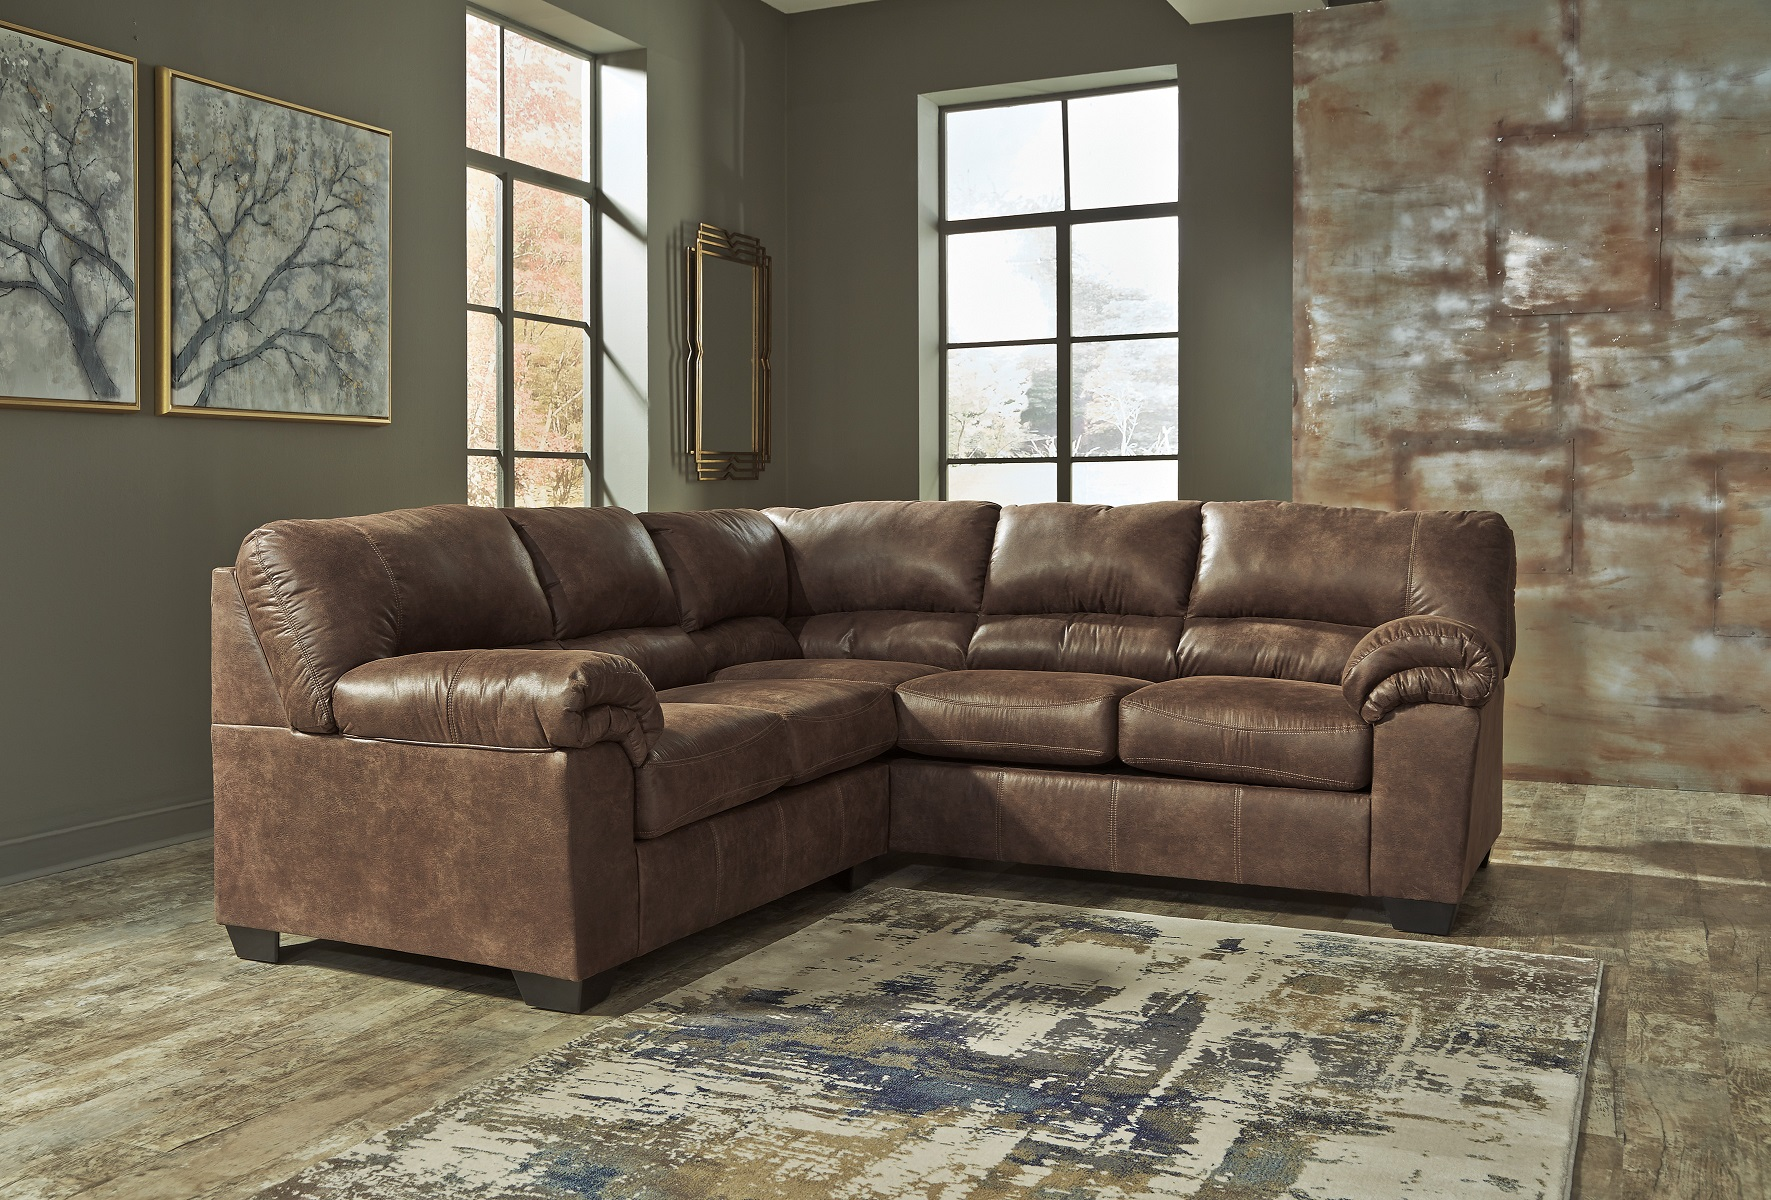 Bladen Ashley Sofa Sectional Contemporary Faux Leather Coffee Brown